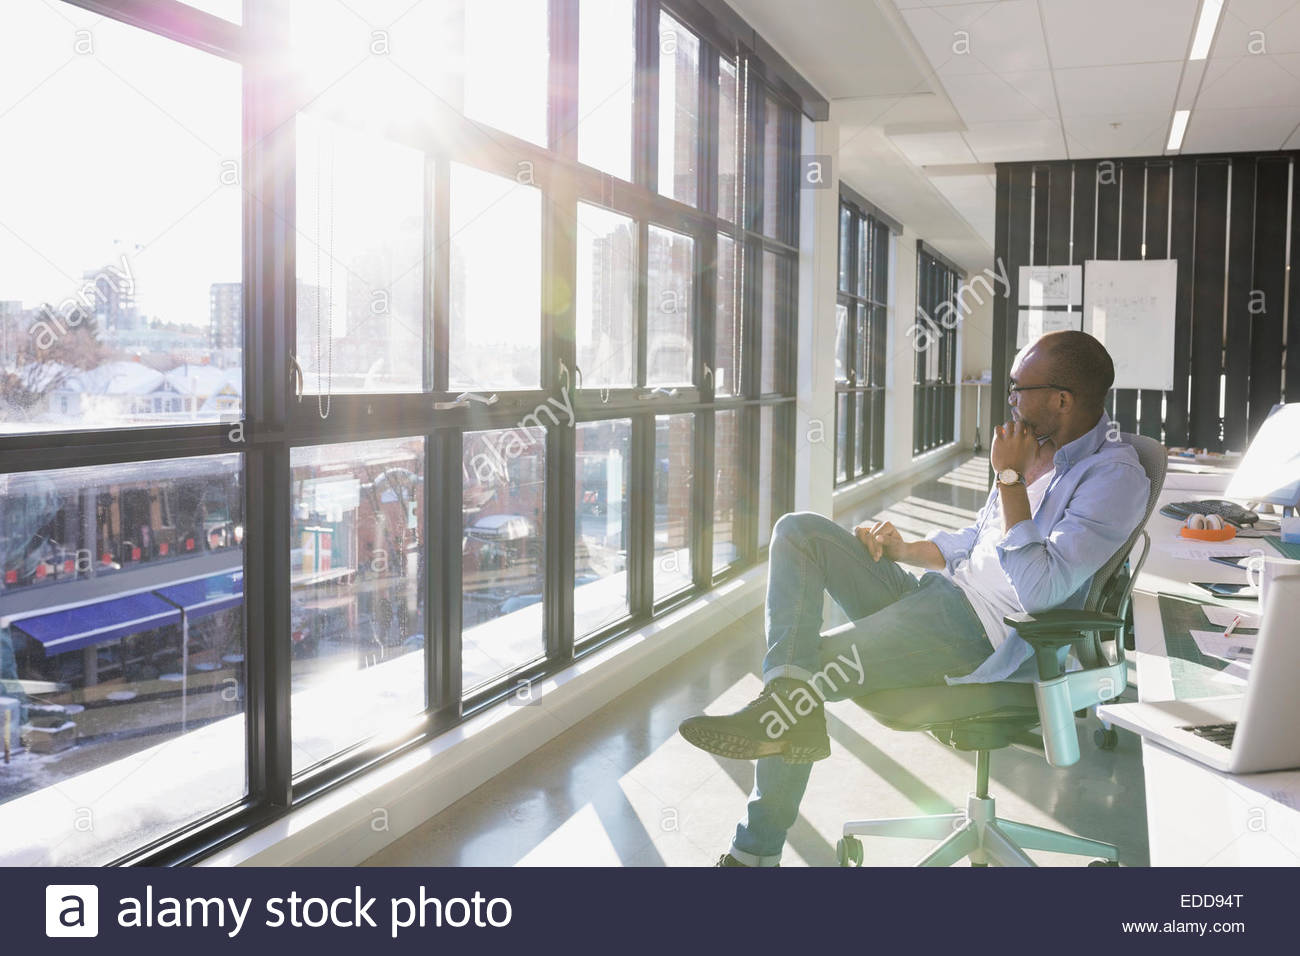 Pensive businessman looking out sunny office window - Stock Image